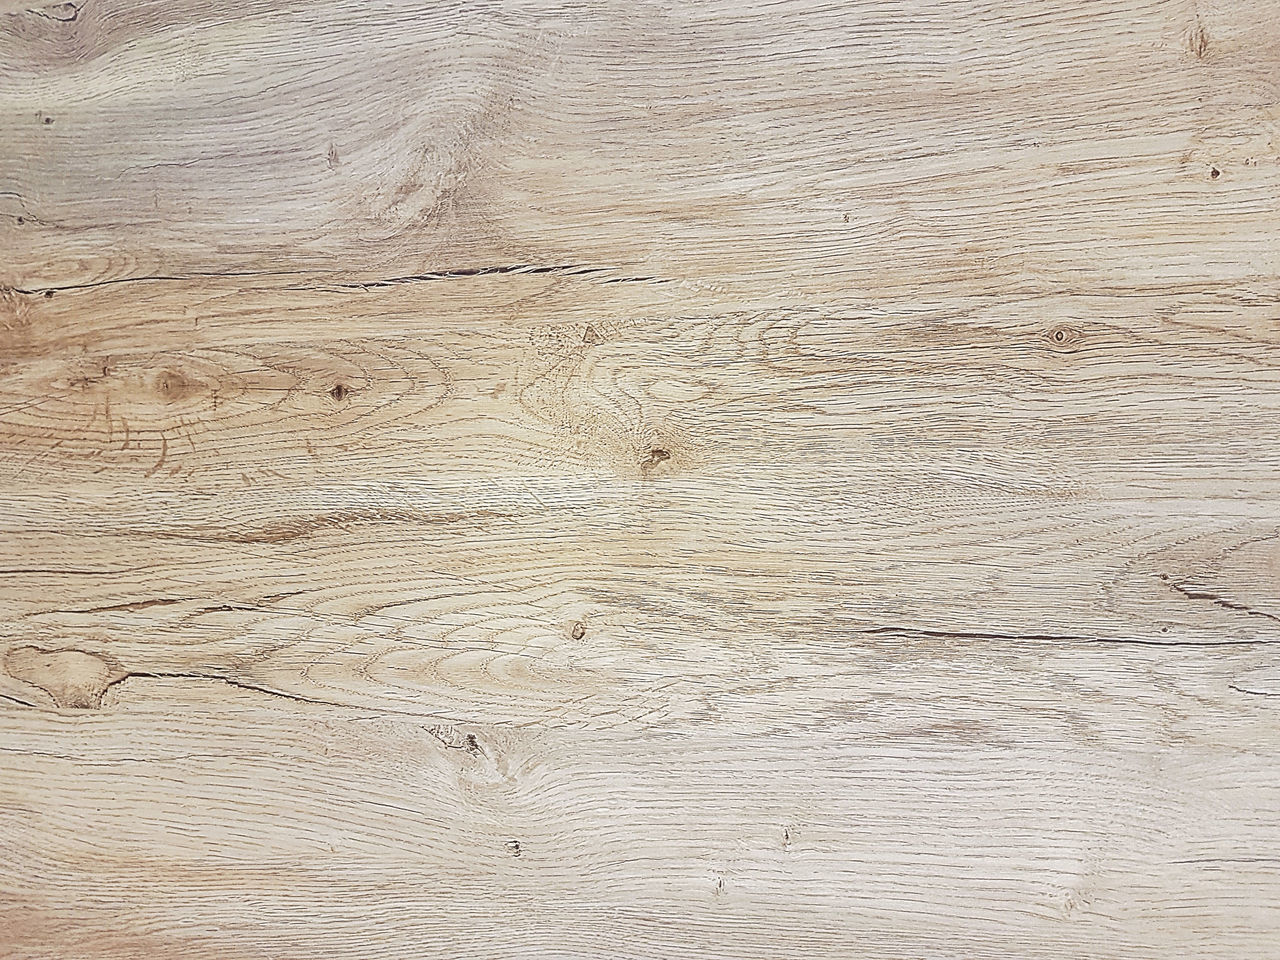 timber, wood grain, backgrounds, pattern, plank, brown, wood paneling, nature, textured, blank, smooth, material, no people, hardwood, tree, wood - material, built structure, oak tree, building exterior, close-up